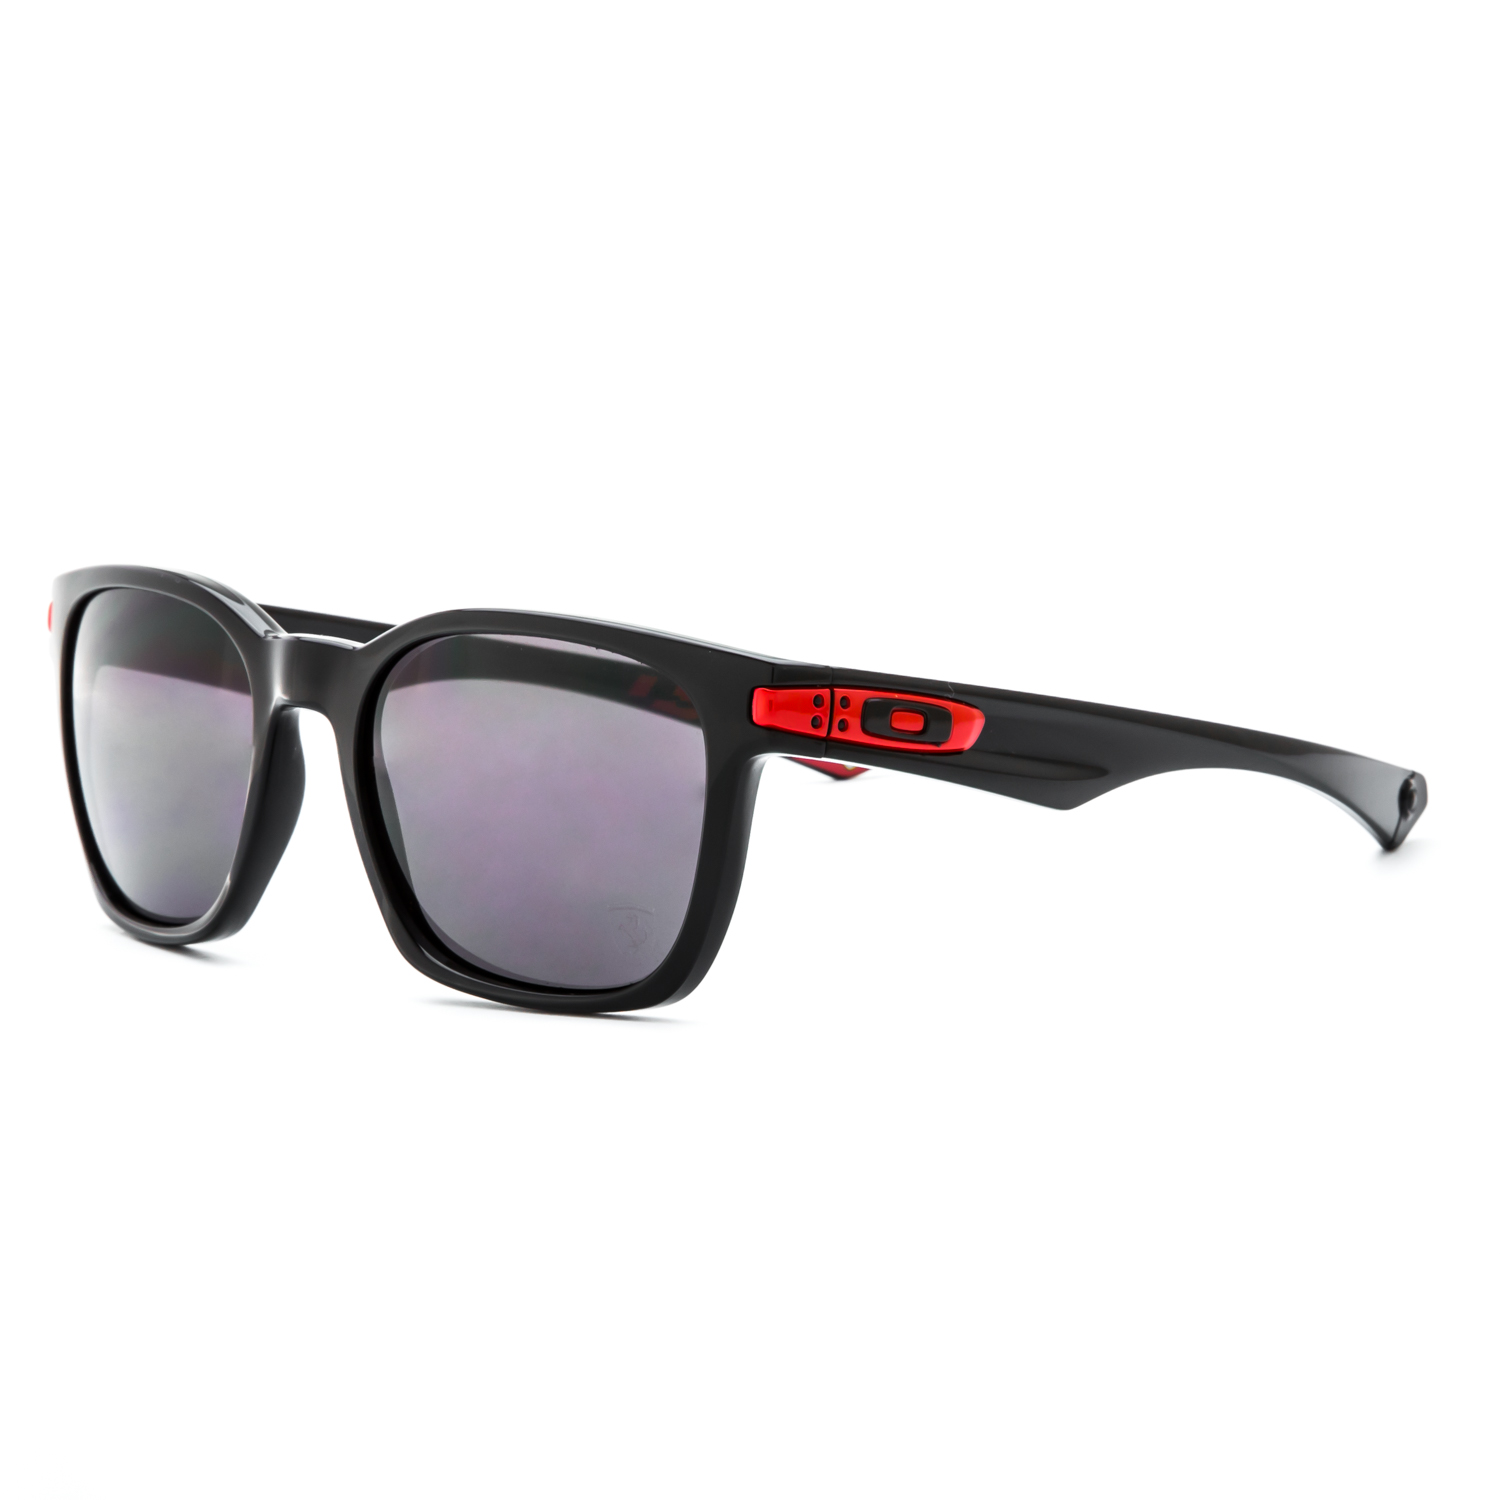 do oakley glasses come with a case  oakley scuderia ferrari garage rock sunglasses oo9175 34 black / warm grey rare